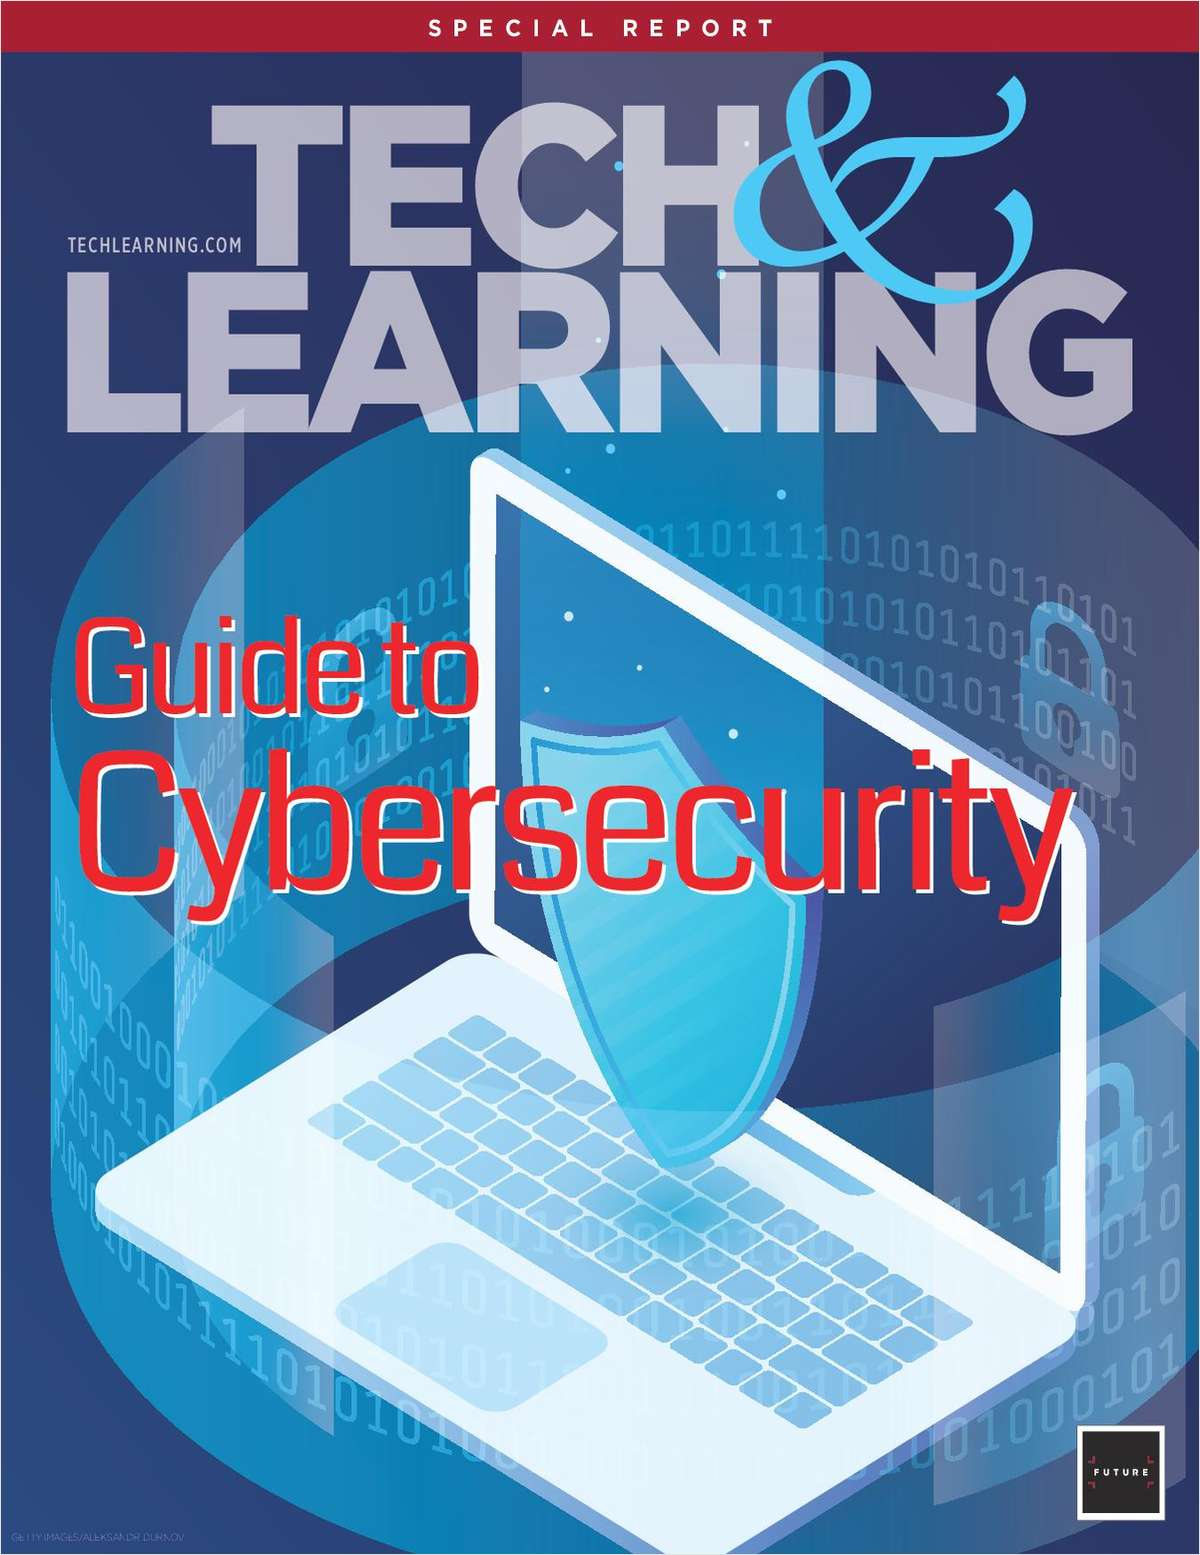 Keeping Students Safe While Learning Online: Special Report from Tech & Learning